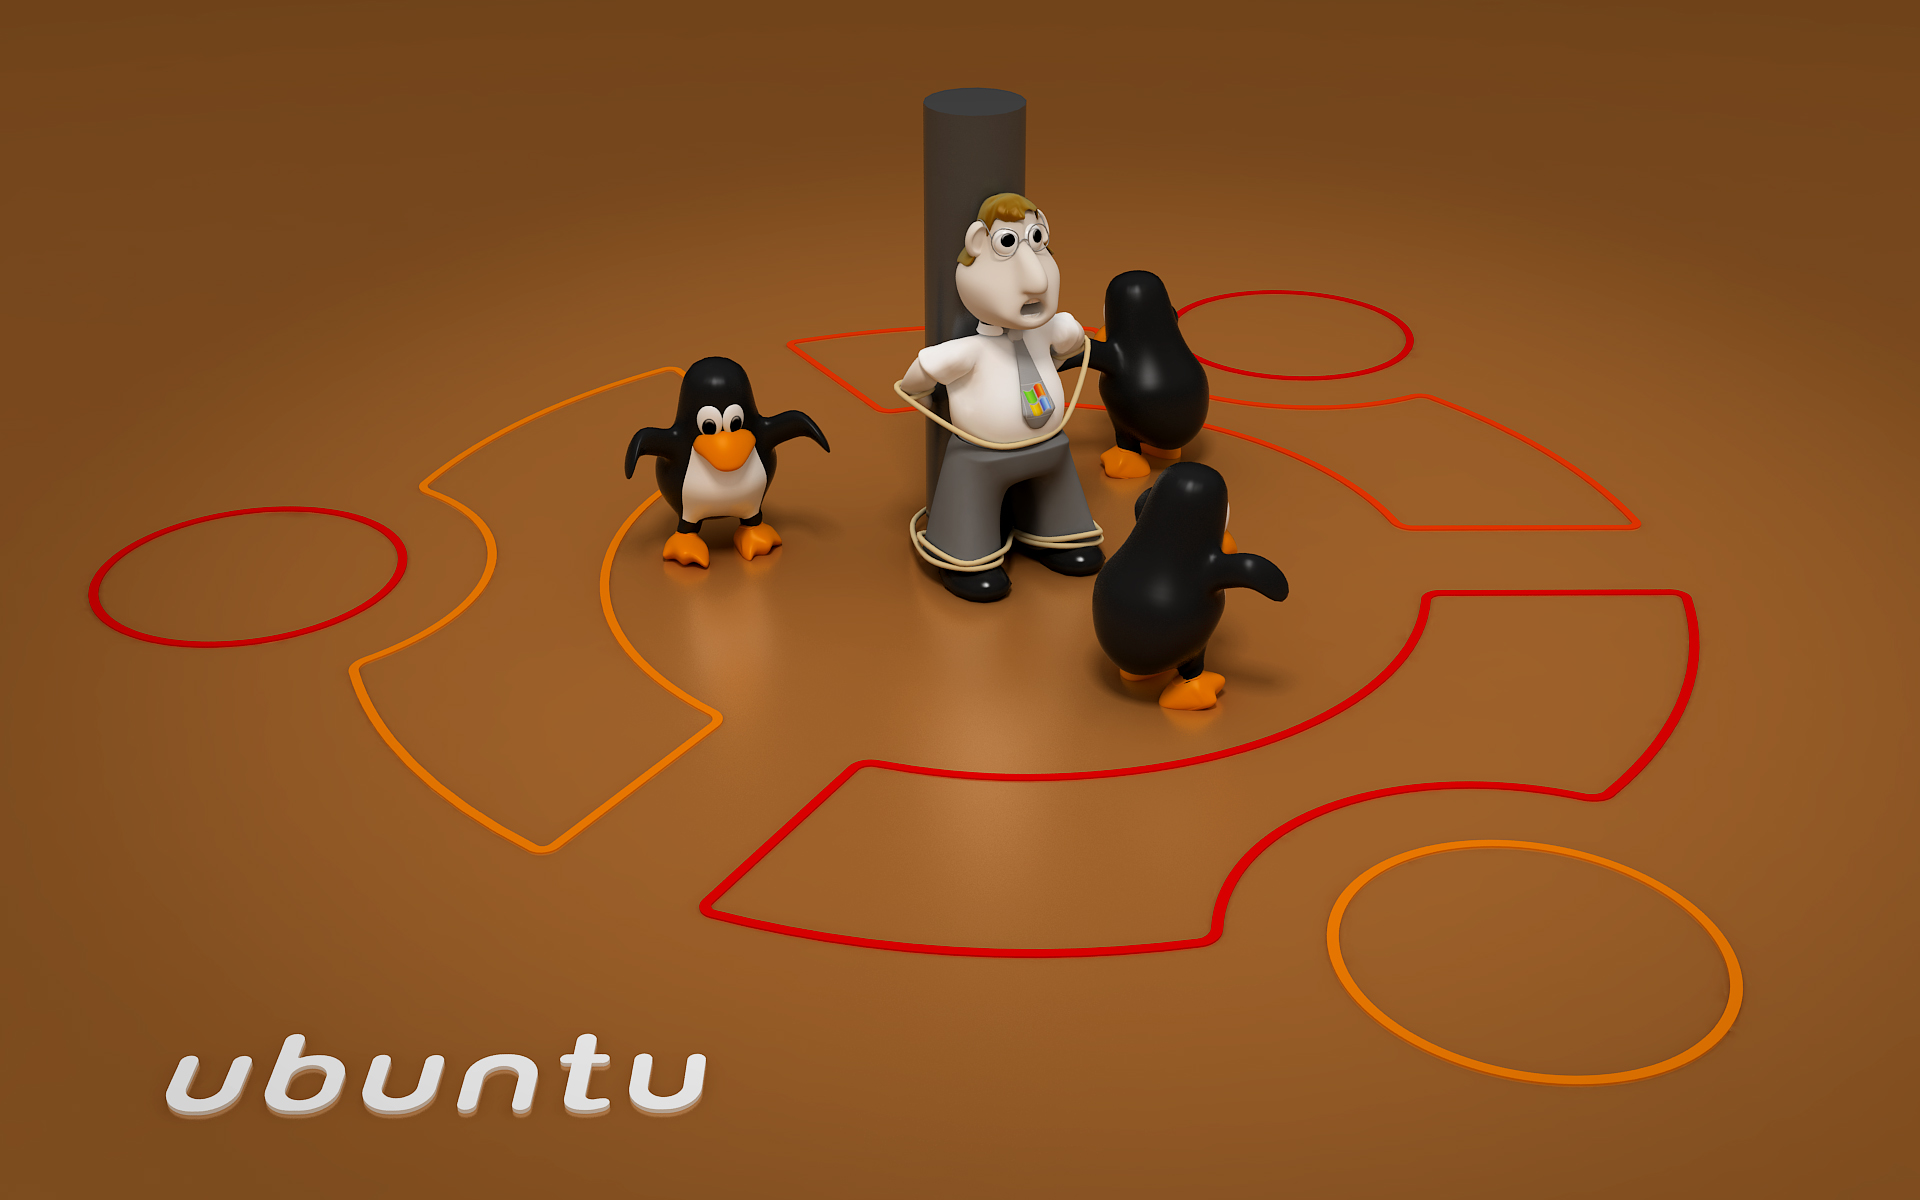 Best Ubuntu HD wallpapers for Download - Mytechshout ... Ubuntu Server Wallpaper